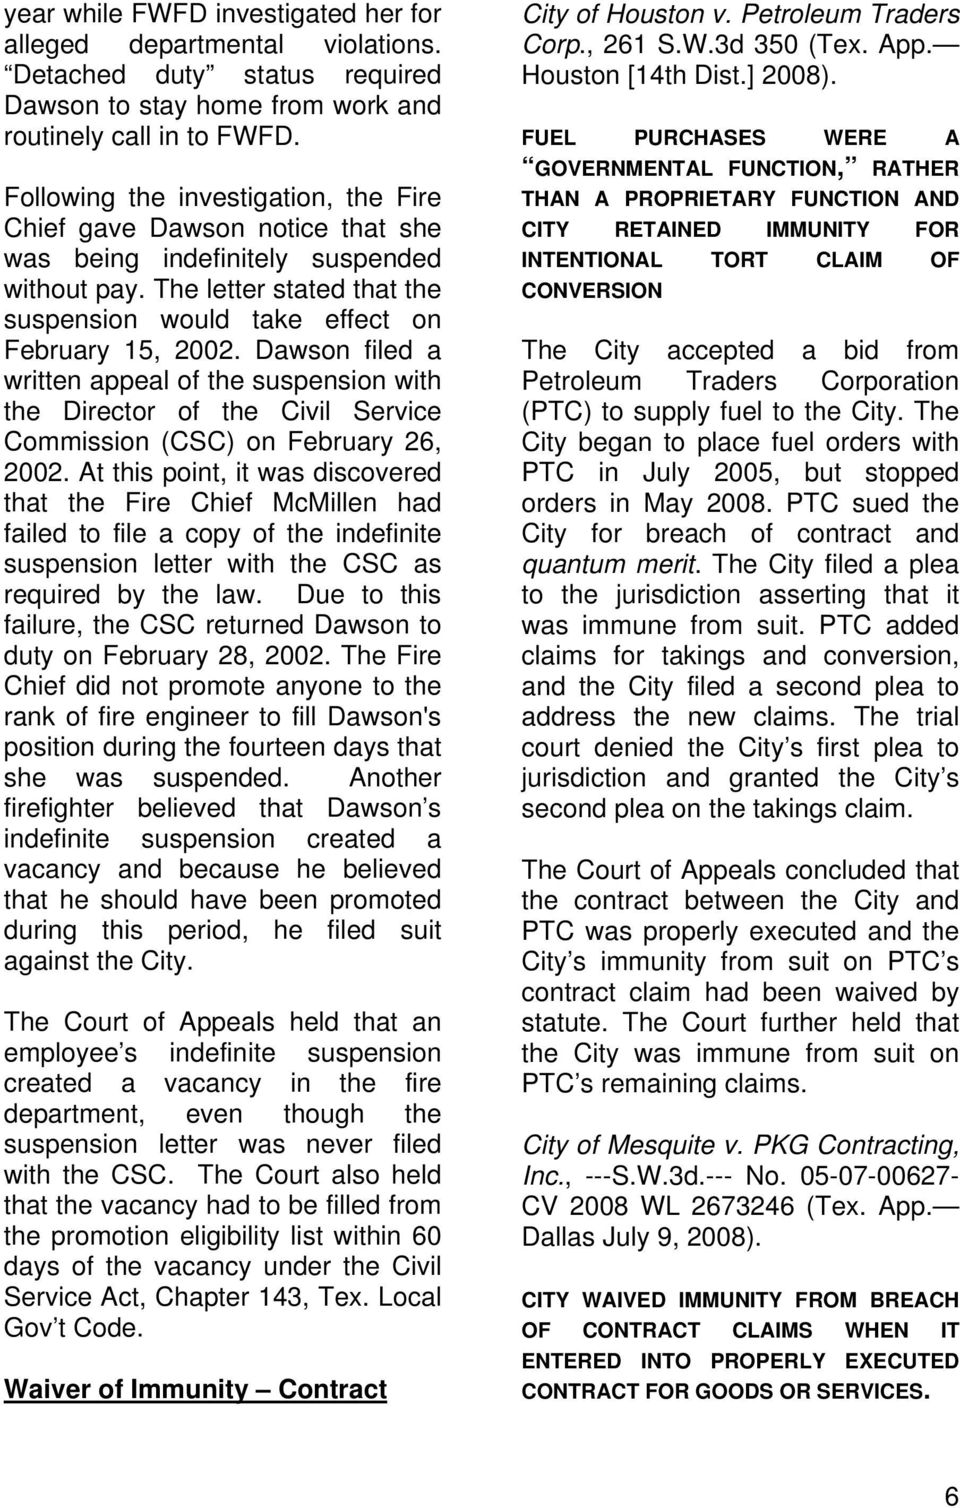 Dawson filed a written appeal of the suspension with the Director of the Civil Service Commission (CSC) on February 26, 2002.